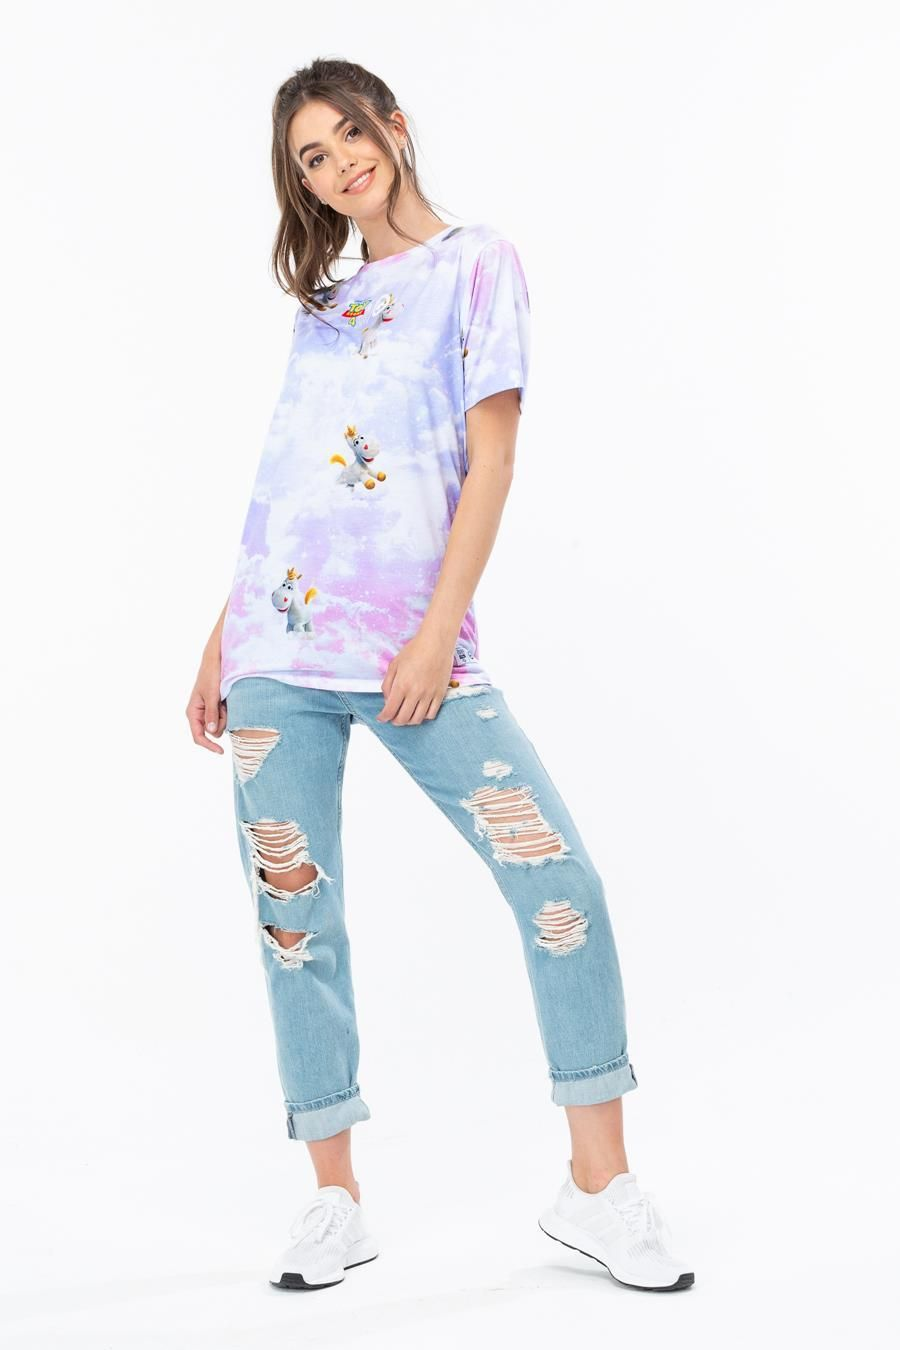 Hype Toy Story Pink Buttercup Skies Womens T-Shirt